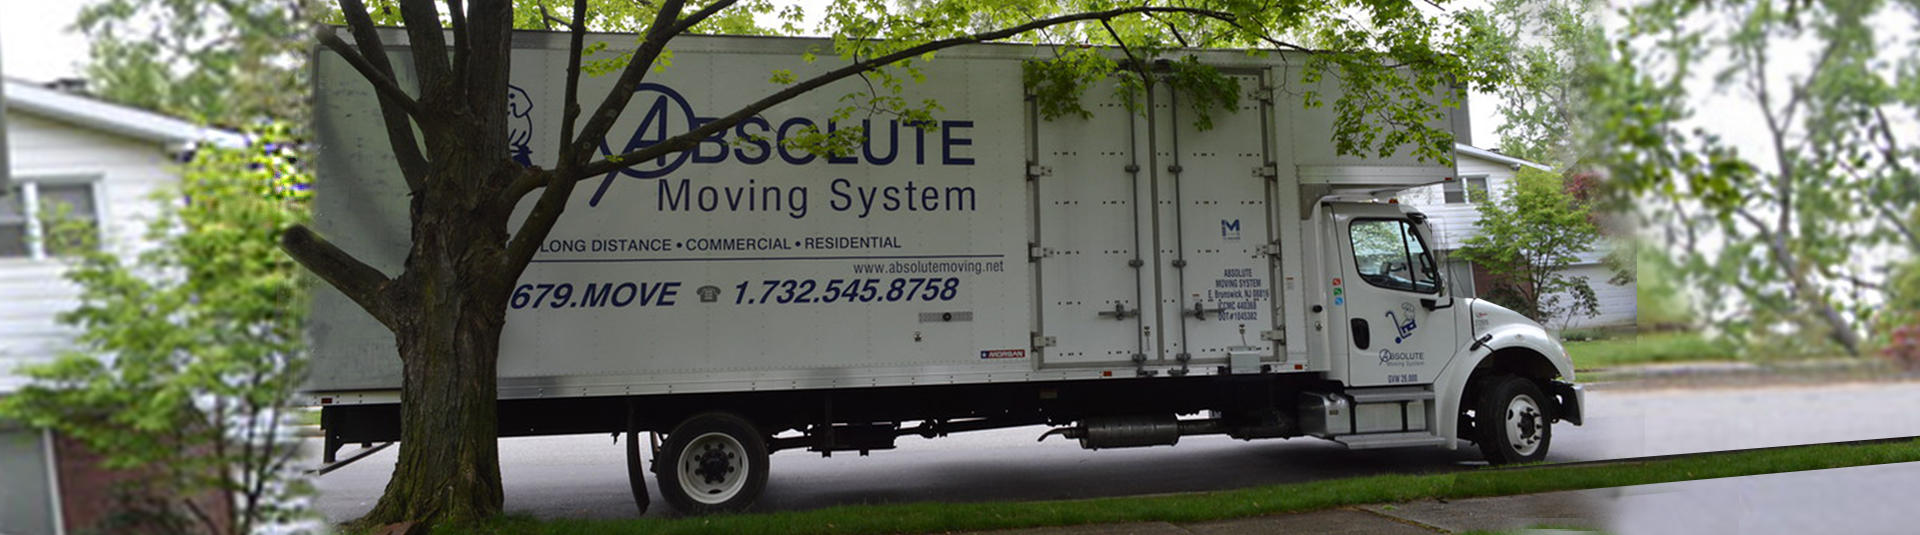 Absolute Moving System image 2